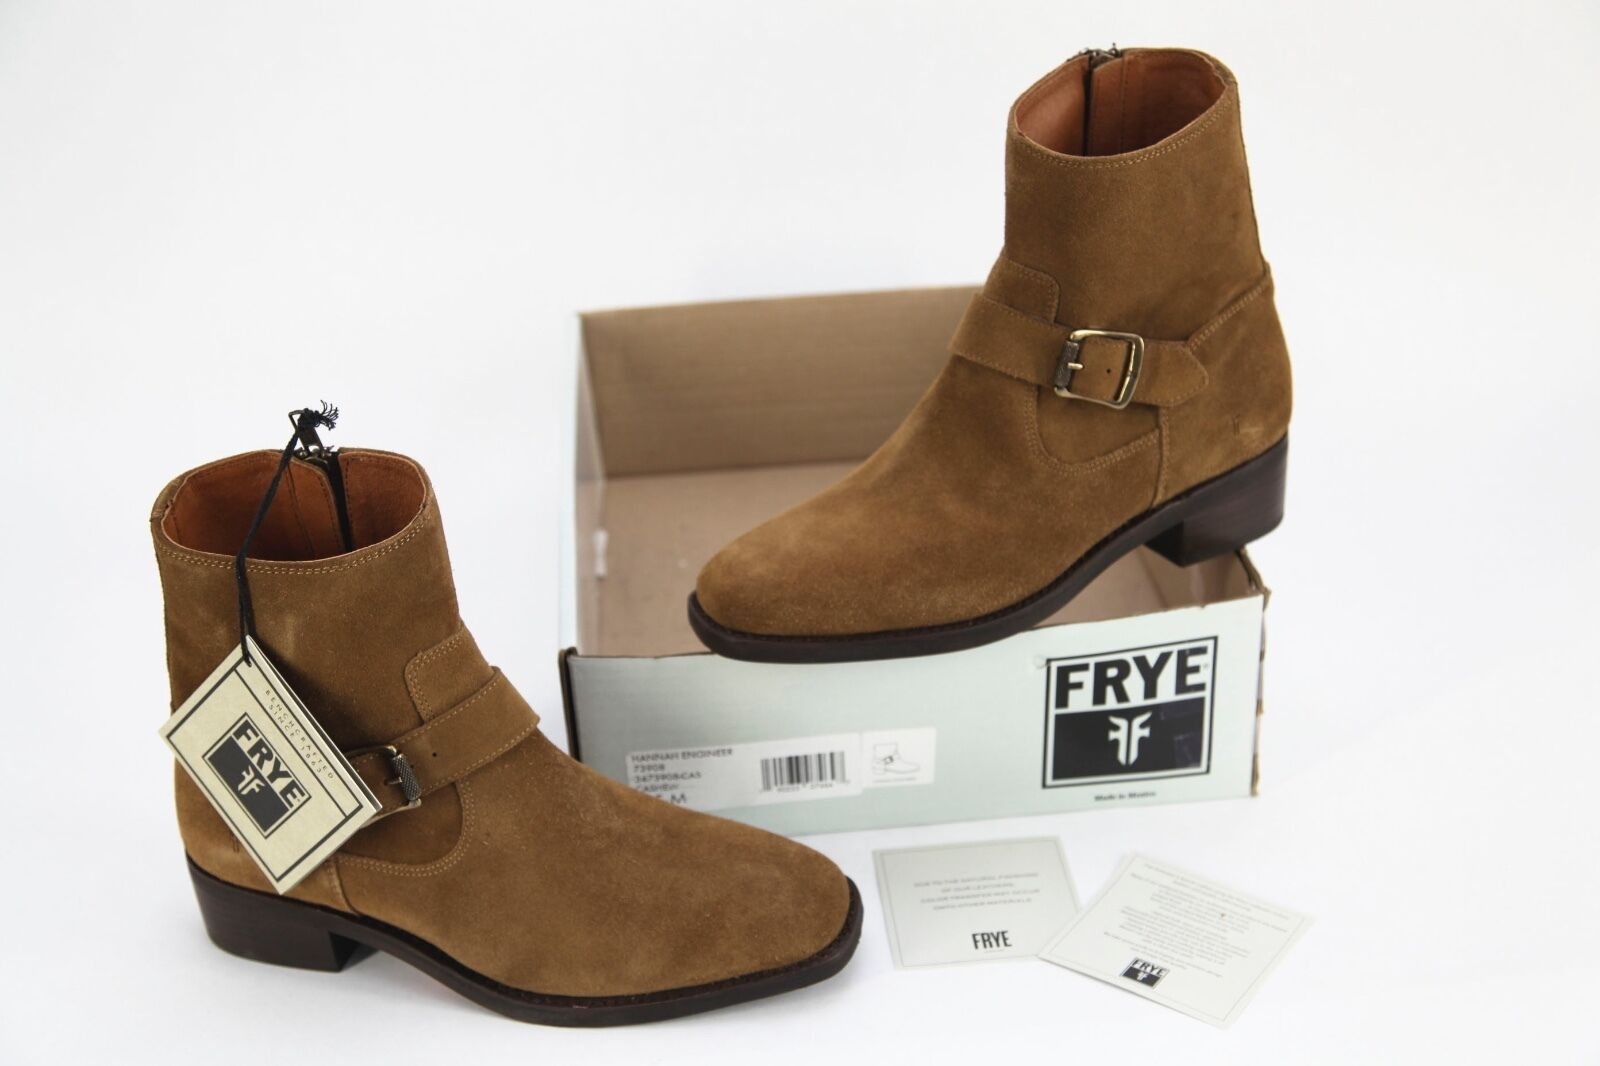 NEW  348 Frye 'Hannah' Leather Engineer Boot in Cashew women's size 9.5M